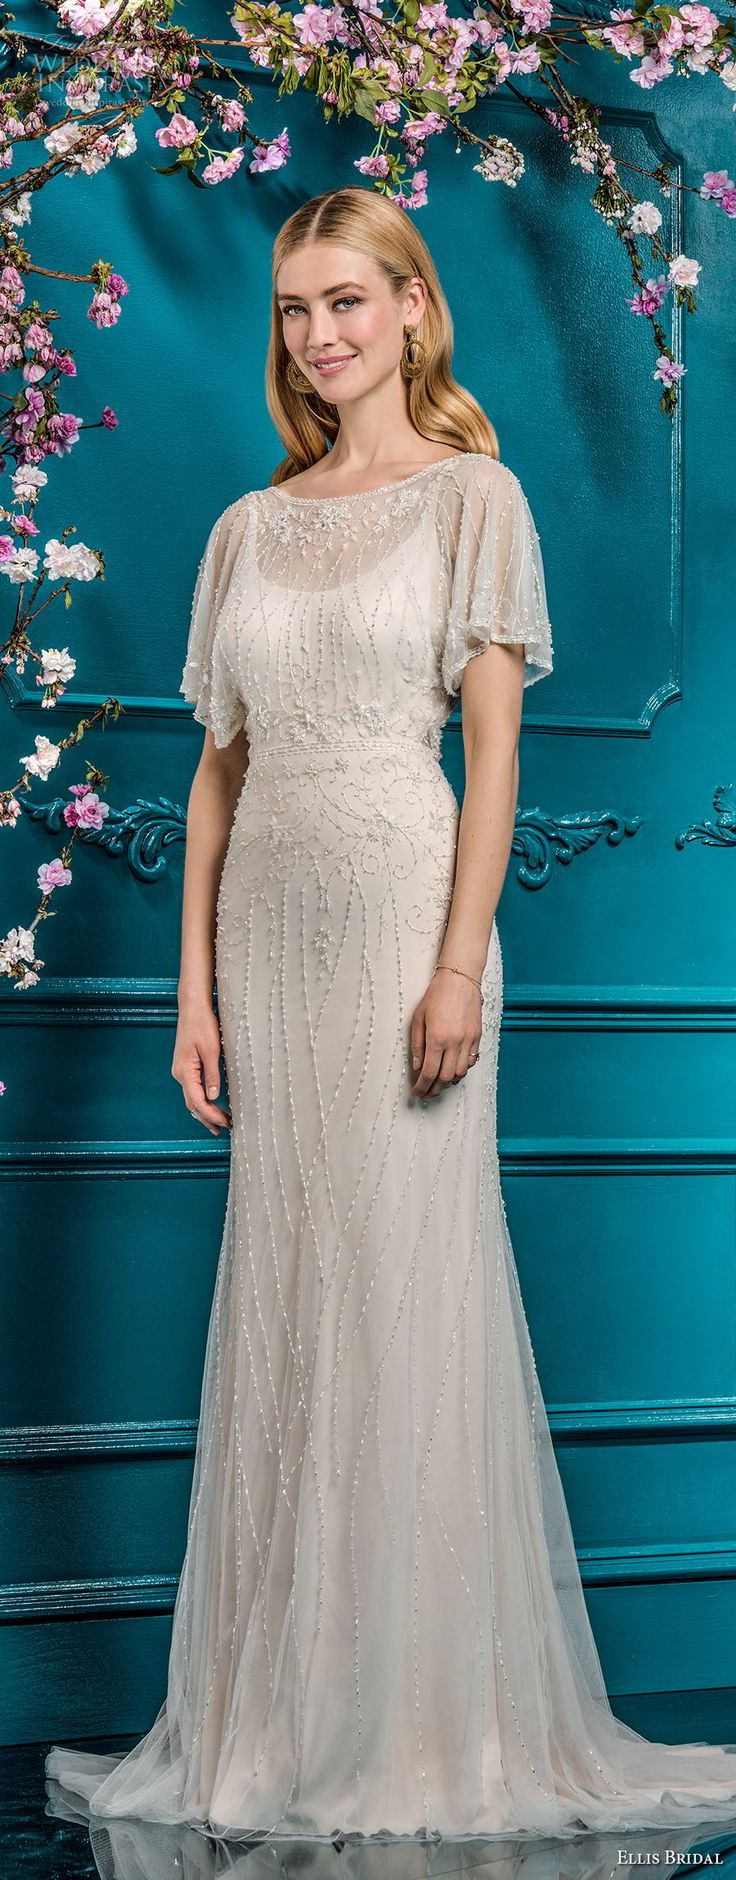 ellis bridals 2018 short sleeves illusion bateau scoop neck full beaded embellishment elegant vintage art deco sheath modified a  line wedding dress open v back sweep train (10) mv -- Ellis Bridals 2018 Wedding Dresses